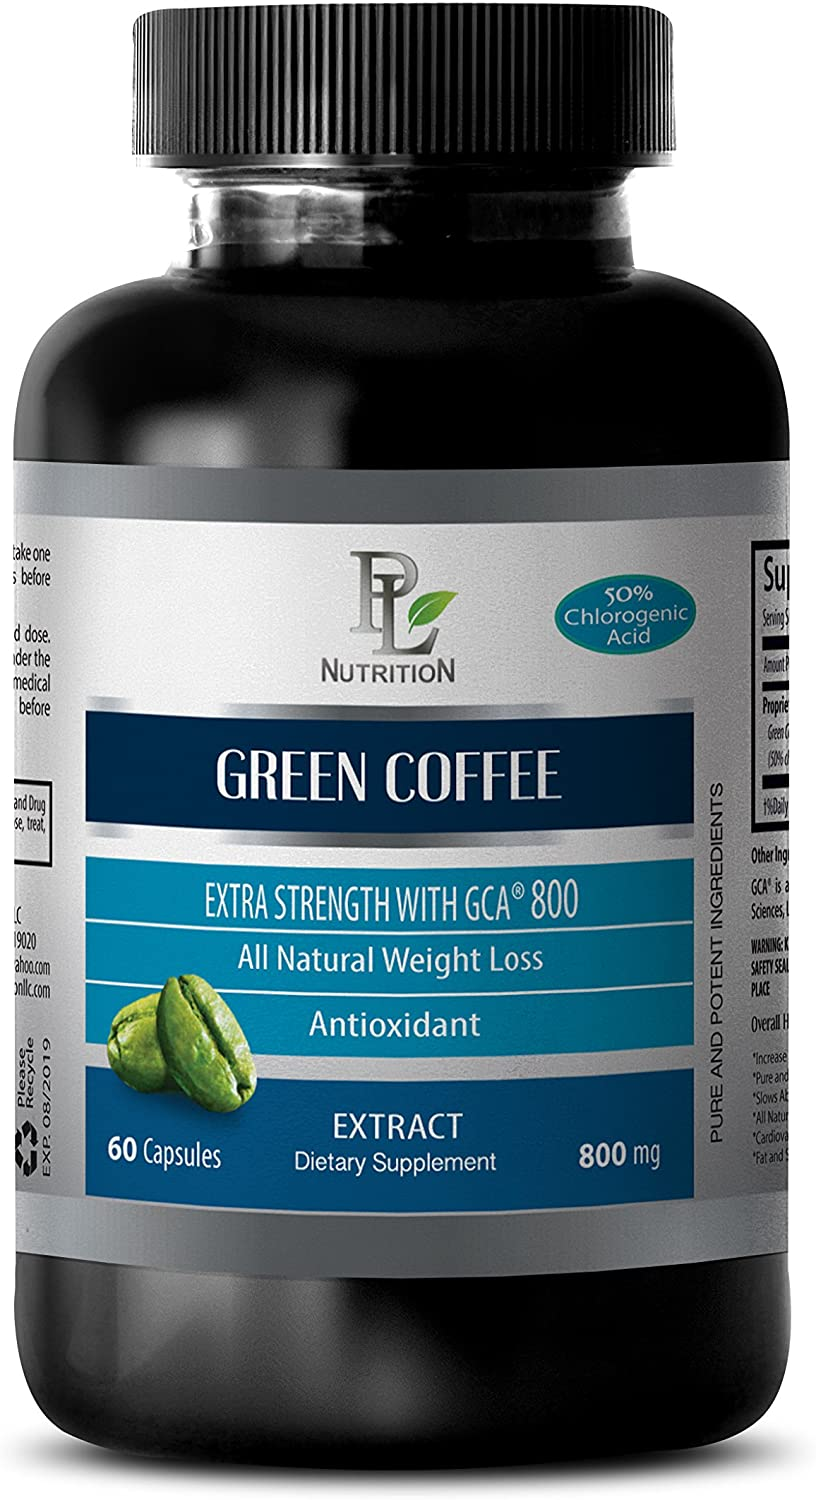 Blood Sugar Harmony - Green Coffee - Extra Strength with GCA 800MG GCA 800MG - Green Coffee antioxidant - 1 Bottle (60 Capsules)